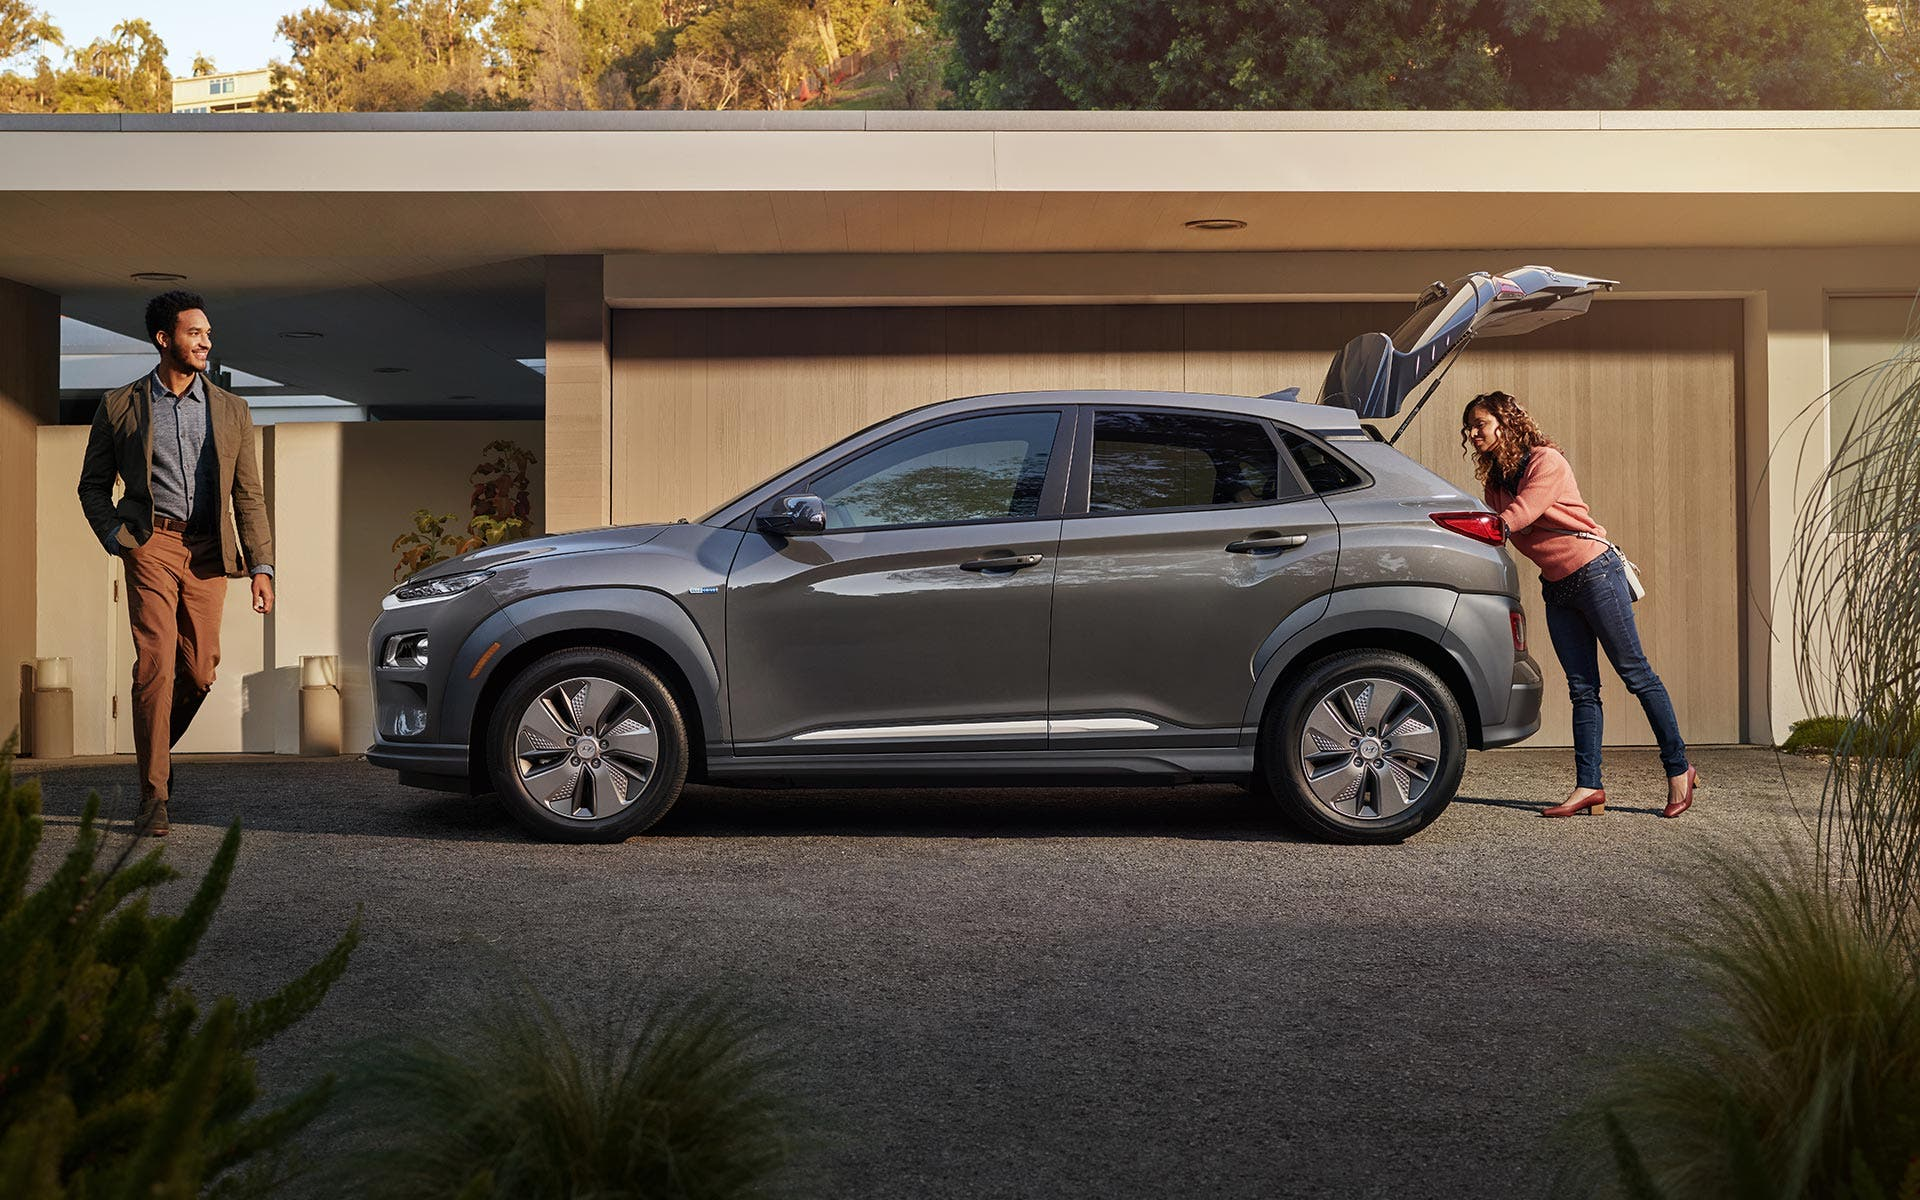 Hyundai Kona EV: There Is Almost No Reason To Buy A Gasoline Car Now